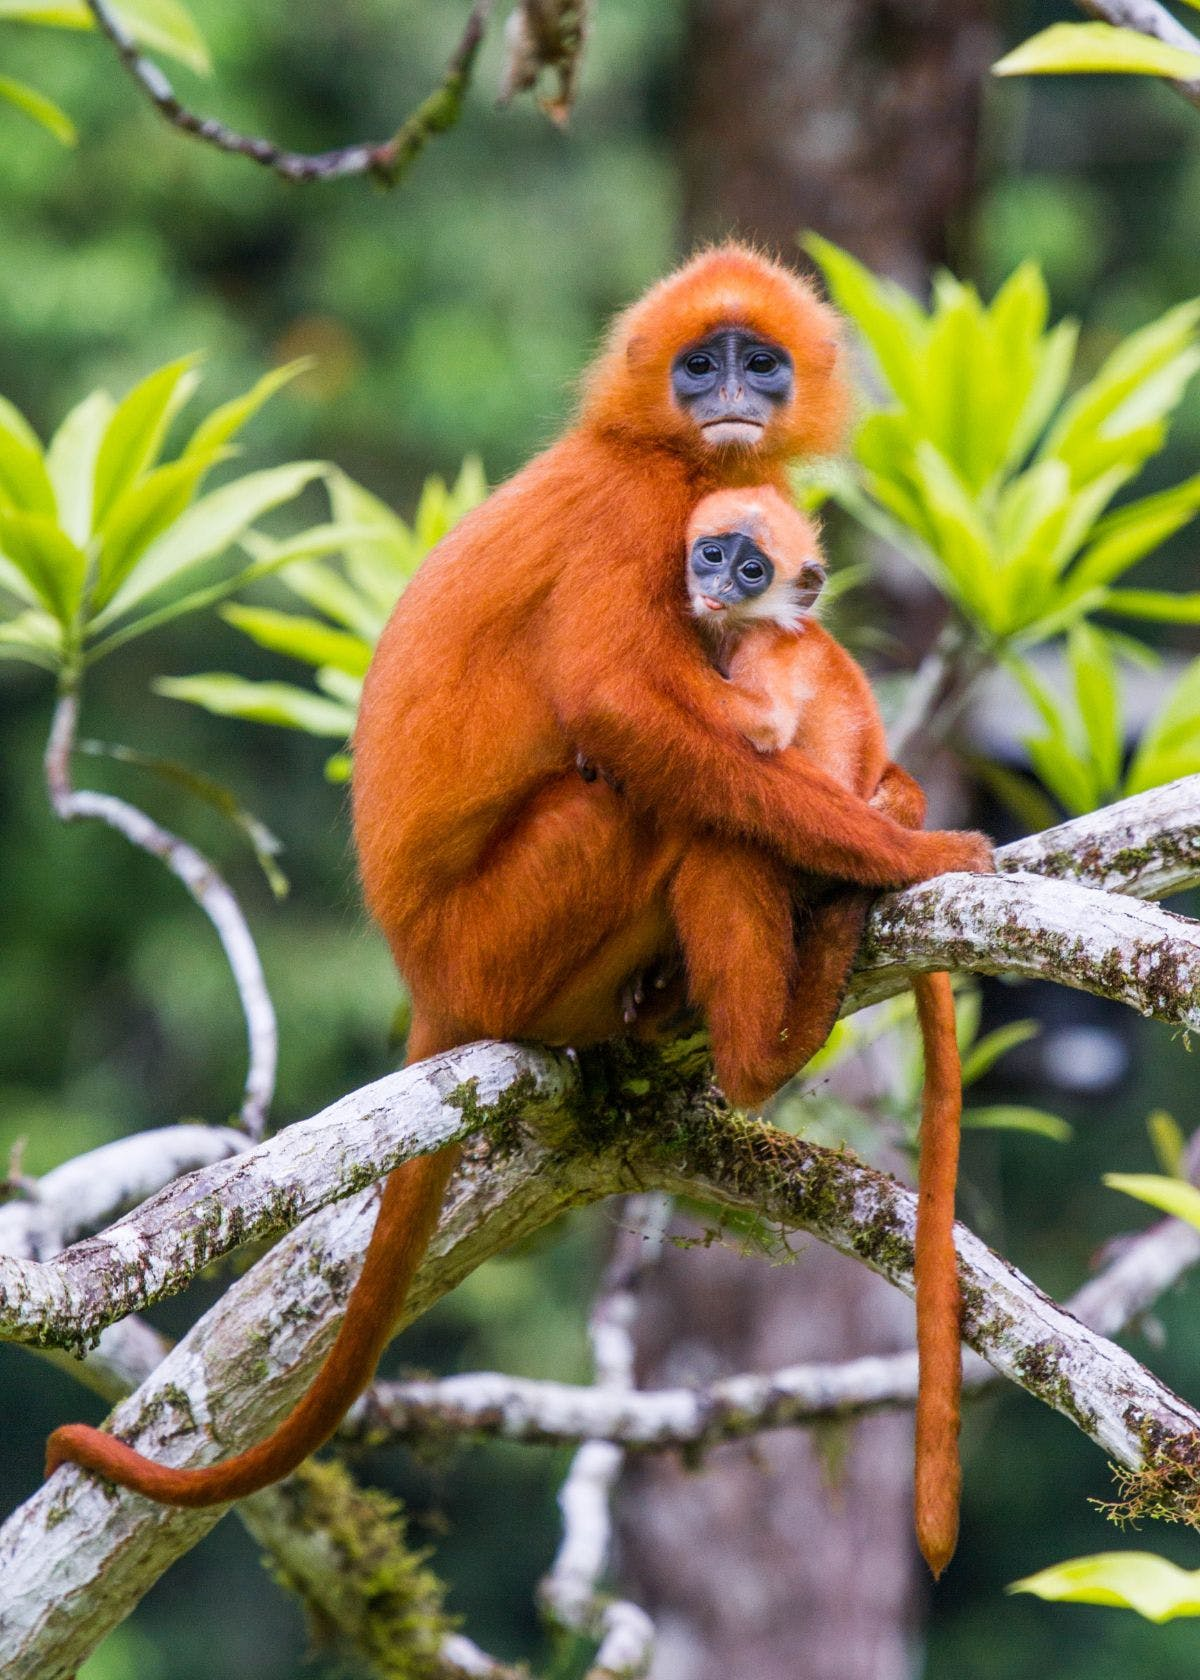 Red leaf monkeys in Borneo. Creative Commons, Paul Williams, 2012.